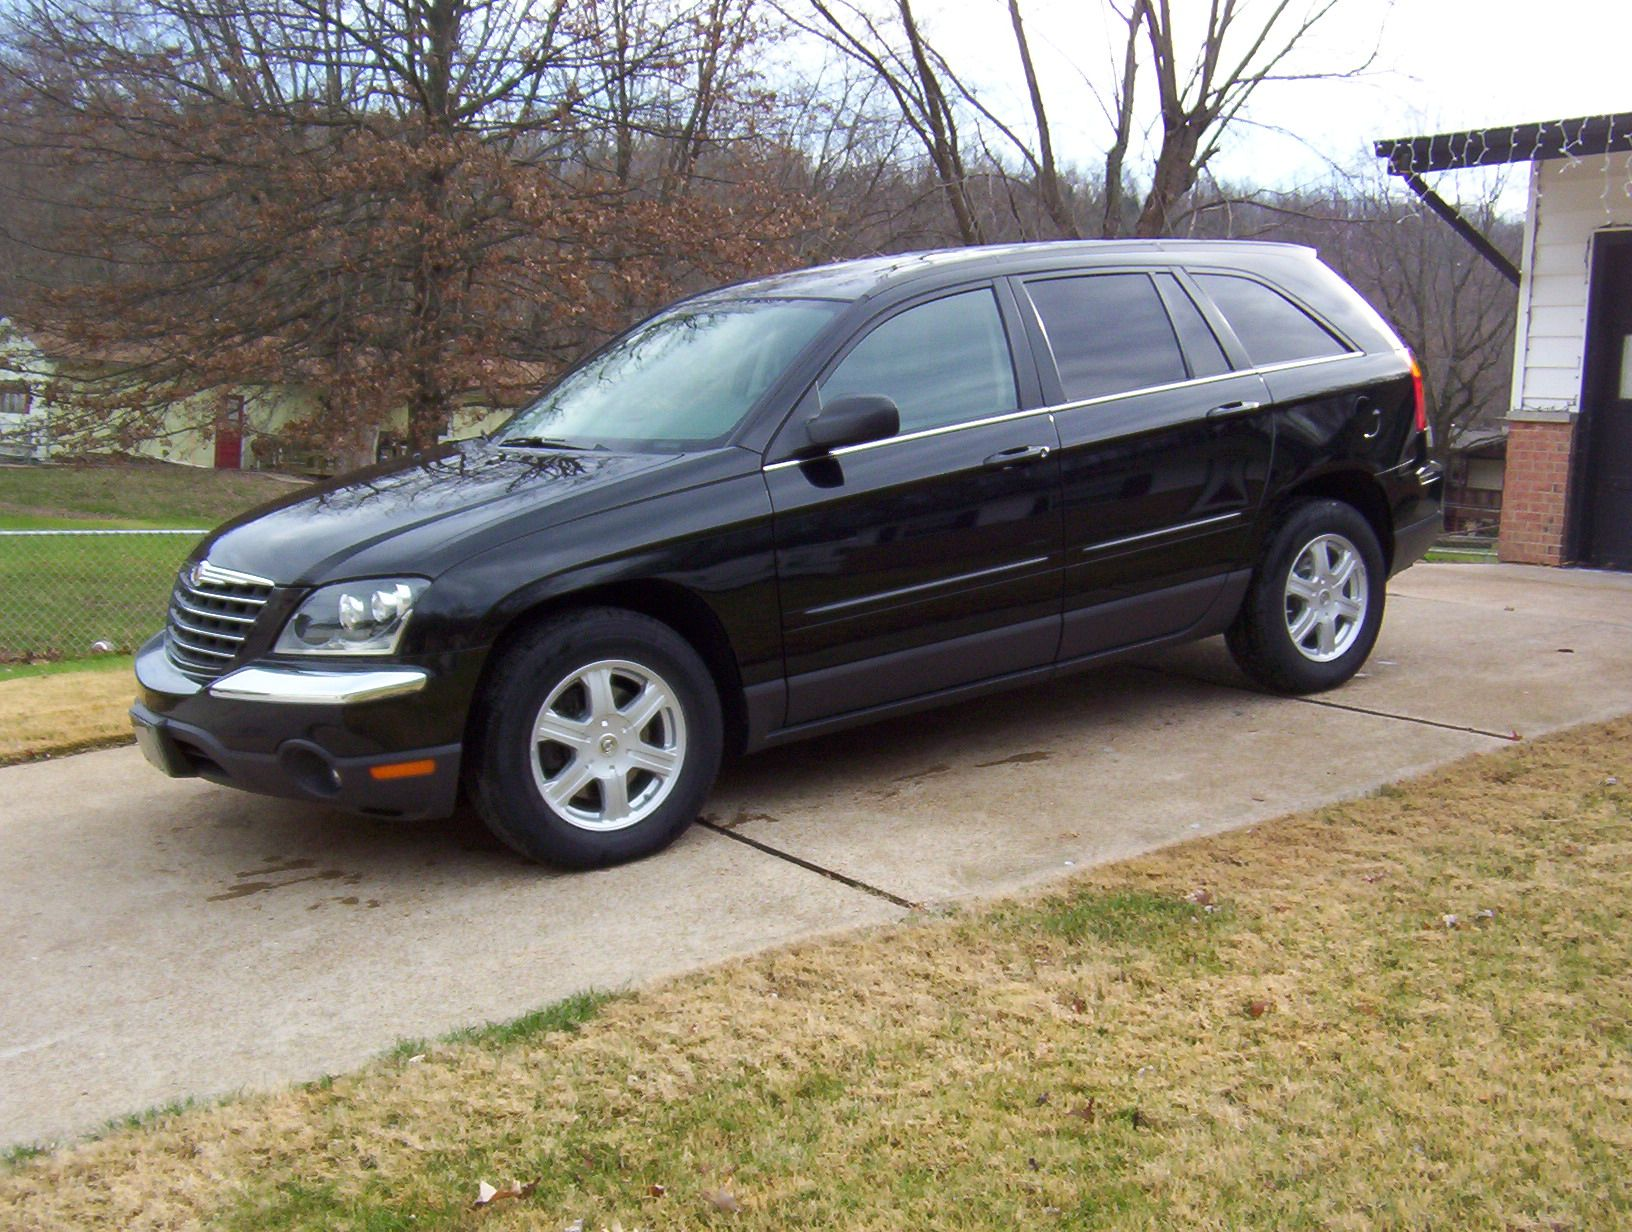 My One Day Old New Chrysler Pacifica Awd Picture Taken 12 06 03